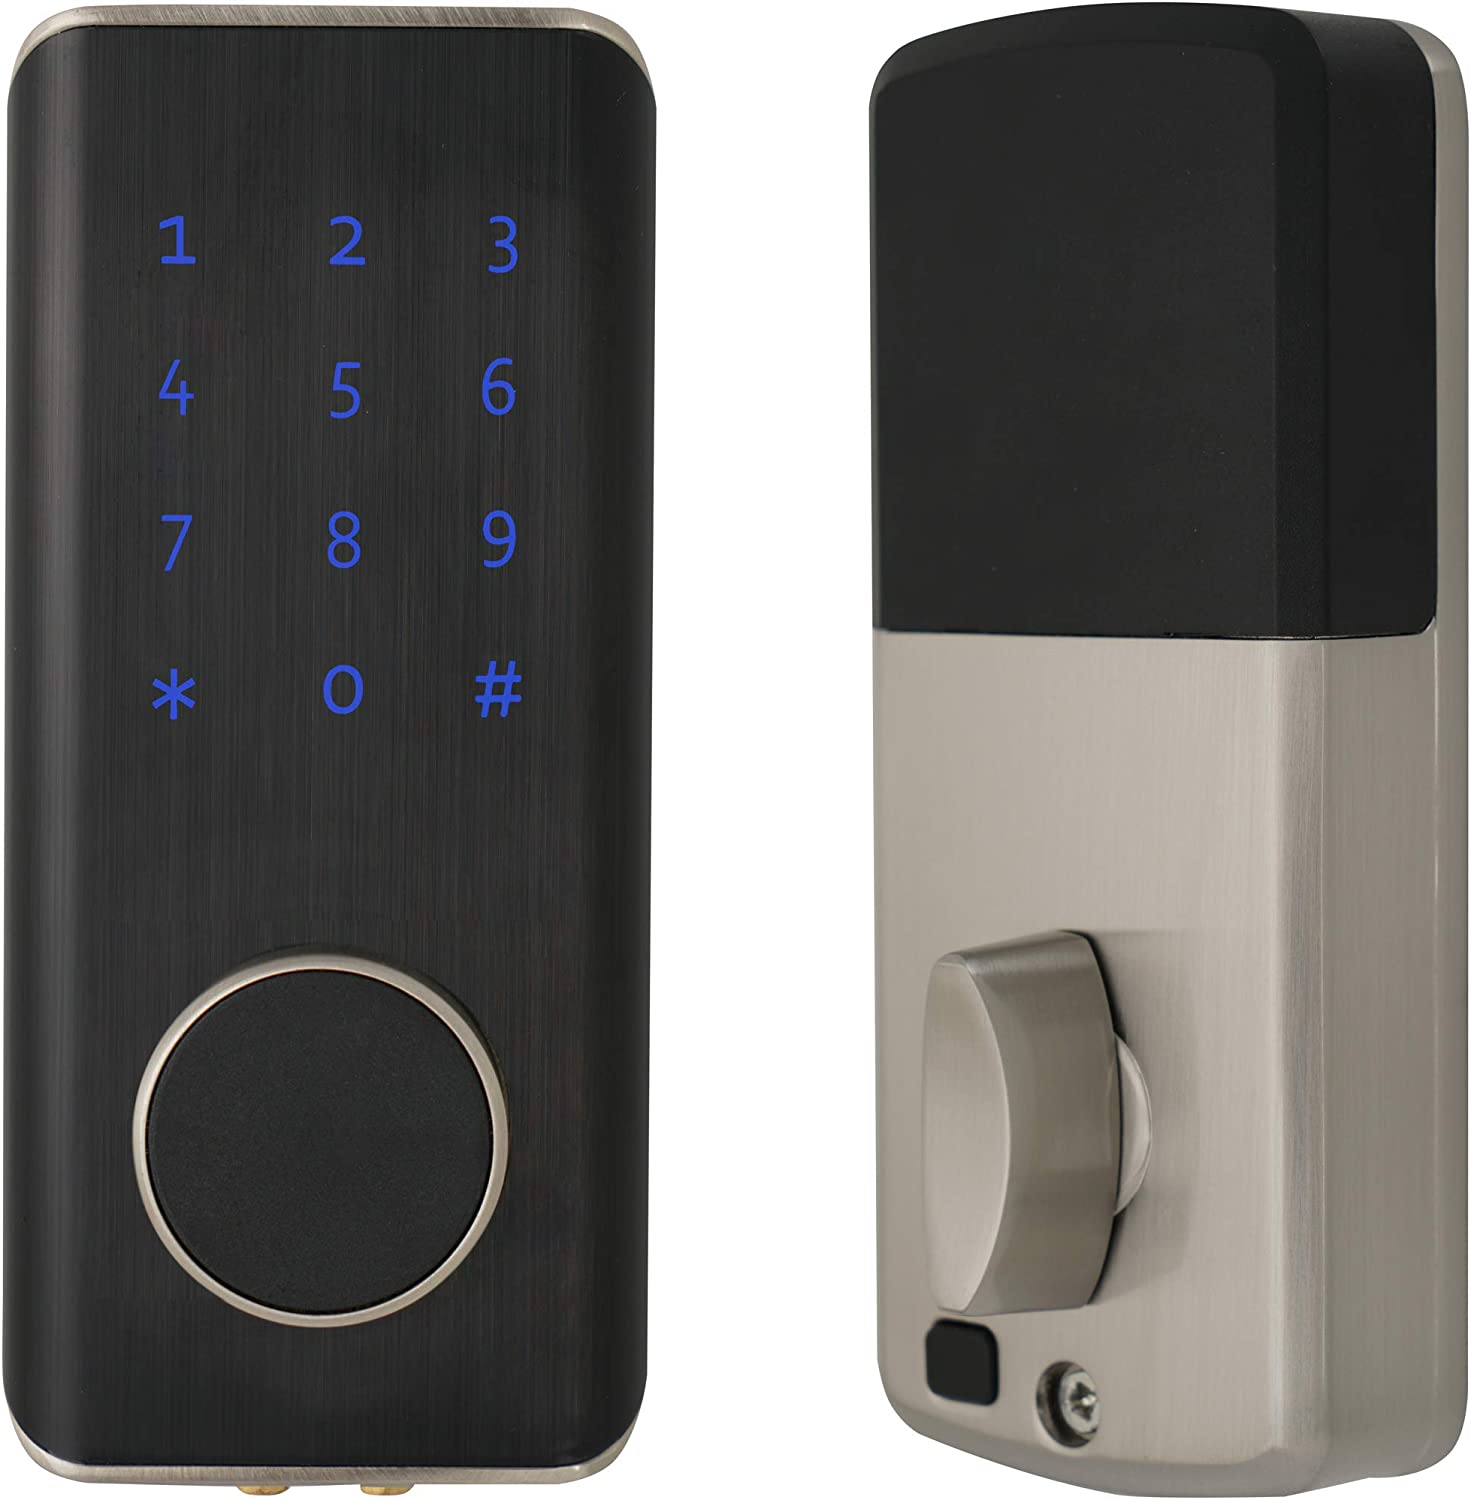 Bluetooth Smart Lock, Security Digital Keyless Entry Door Lock with Keypad Easy to Use Electronic Deadbolt Lock, IP6 Waterproof, Low Battery Reminder